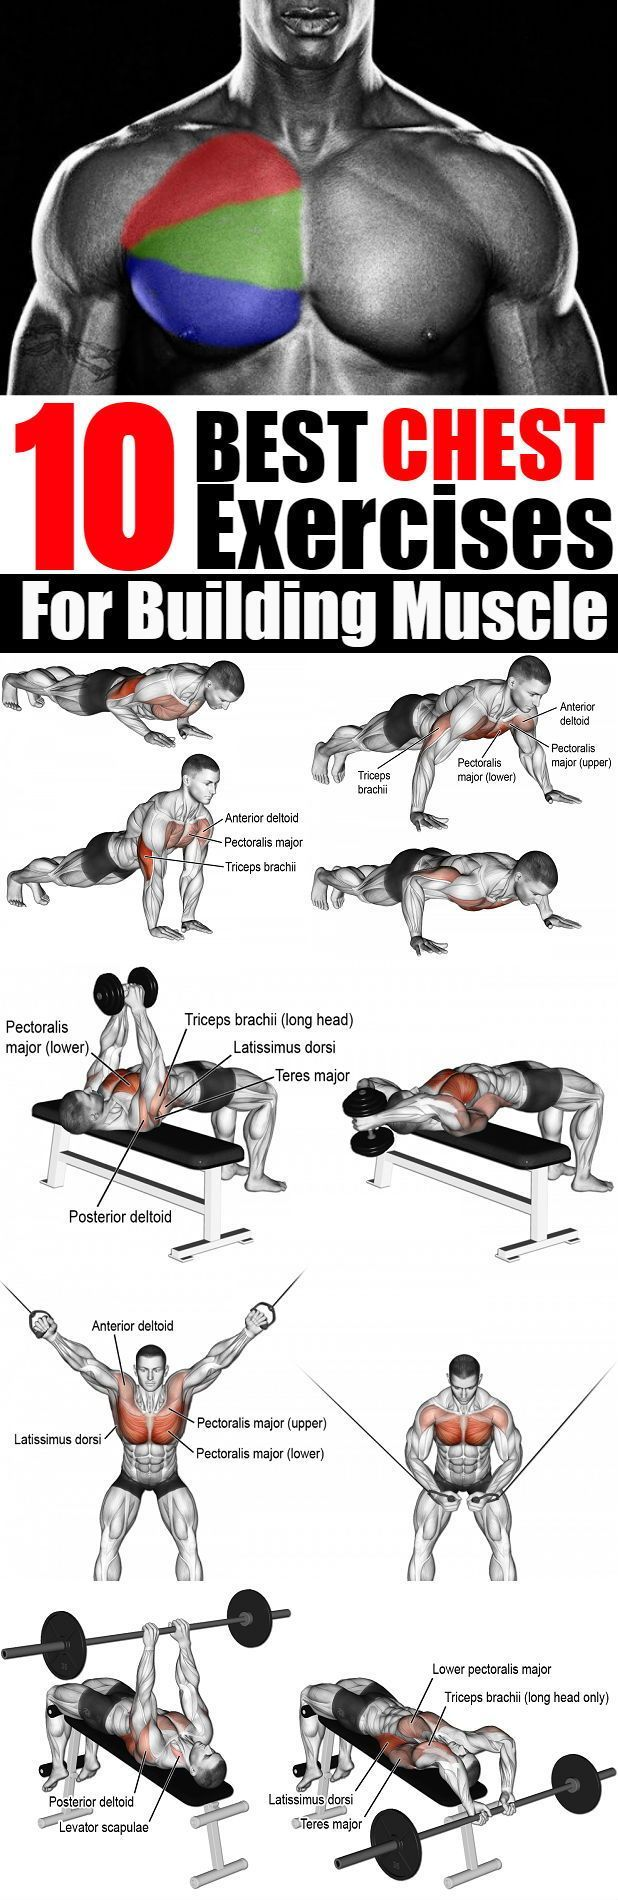 10 Best Chest Exercises For Building Muscle Best chest